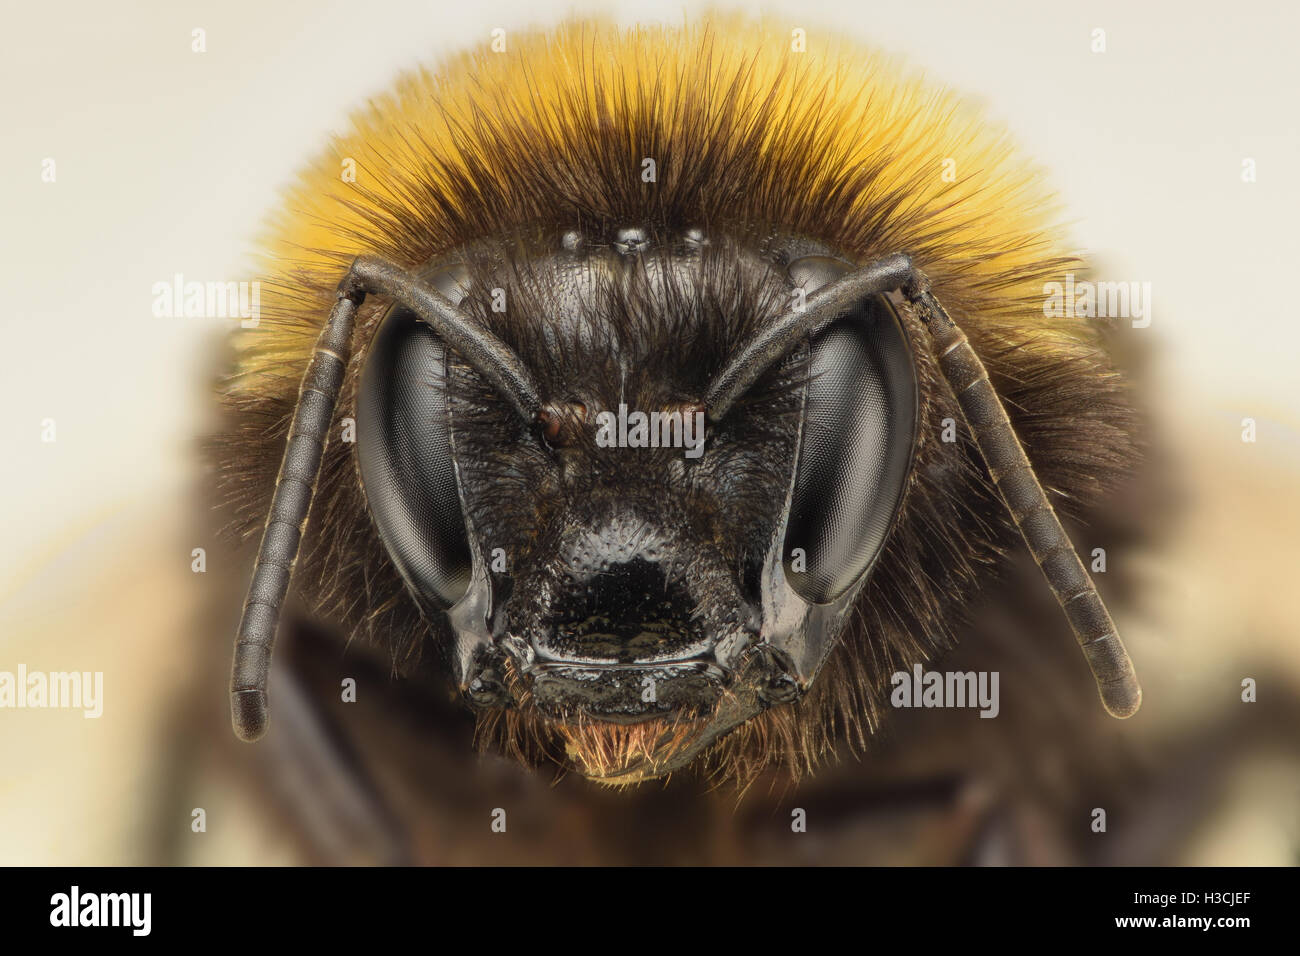 Extreme magnification - Bublebee - Stock Image